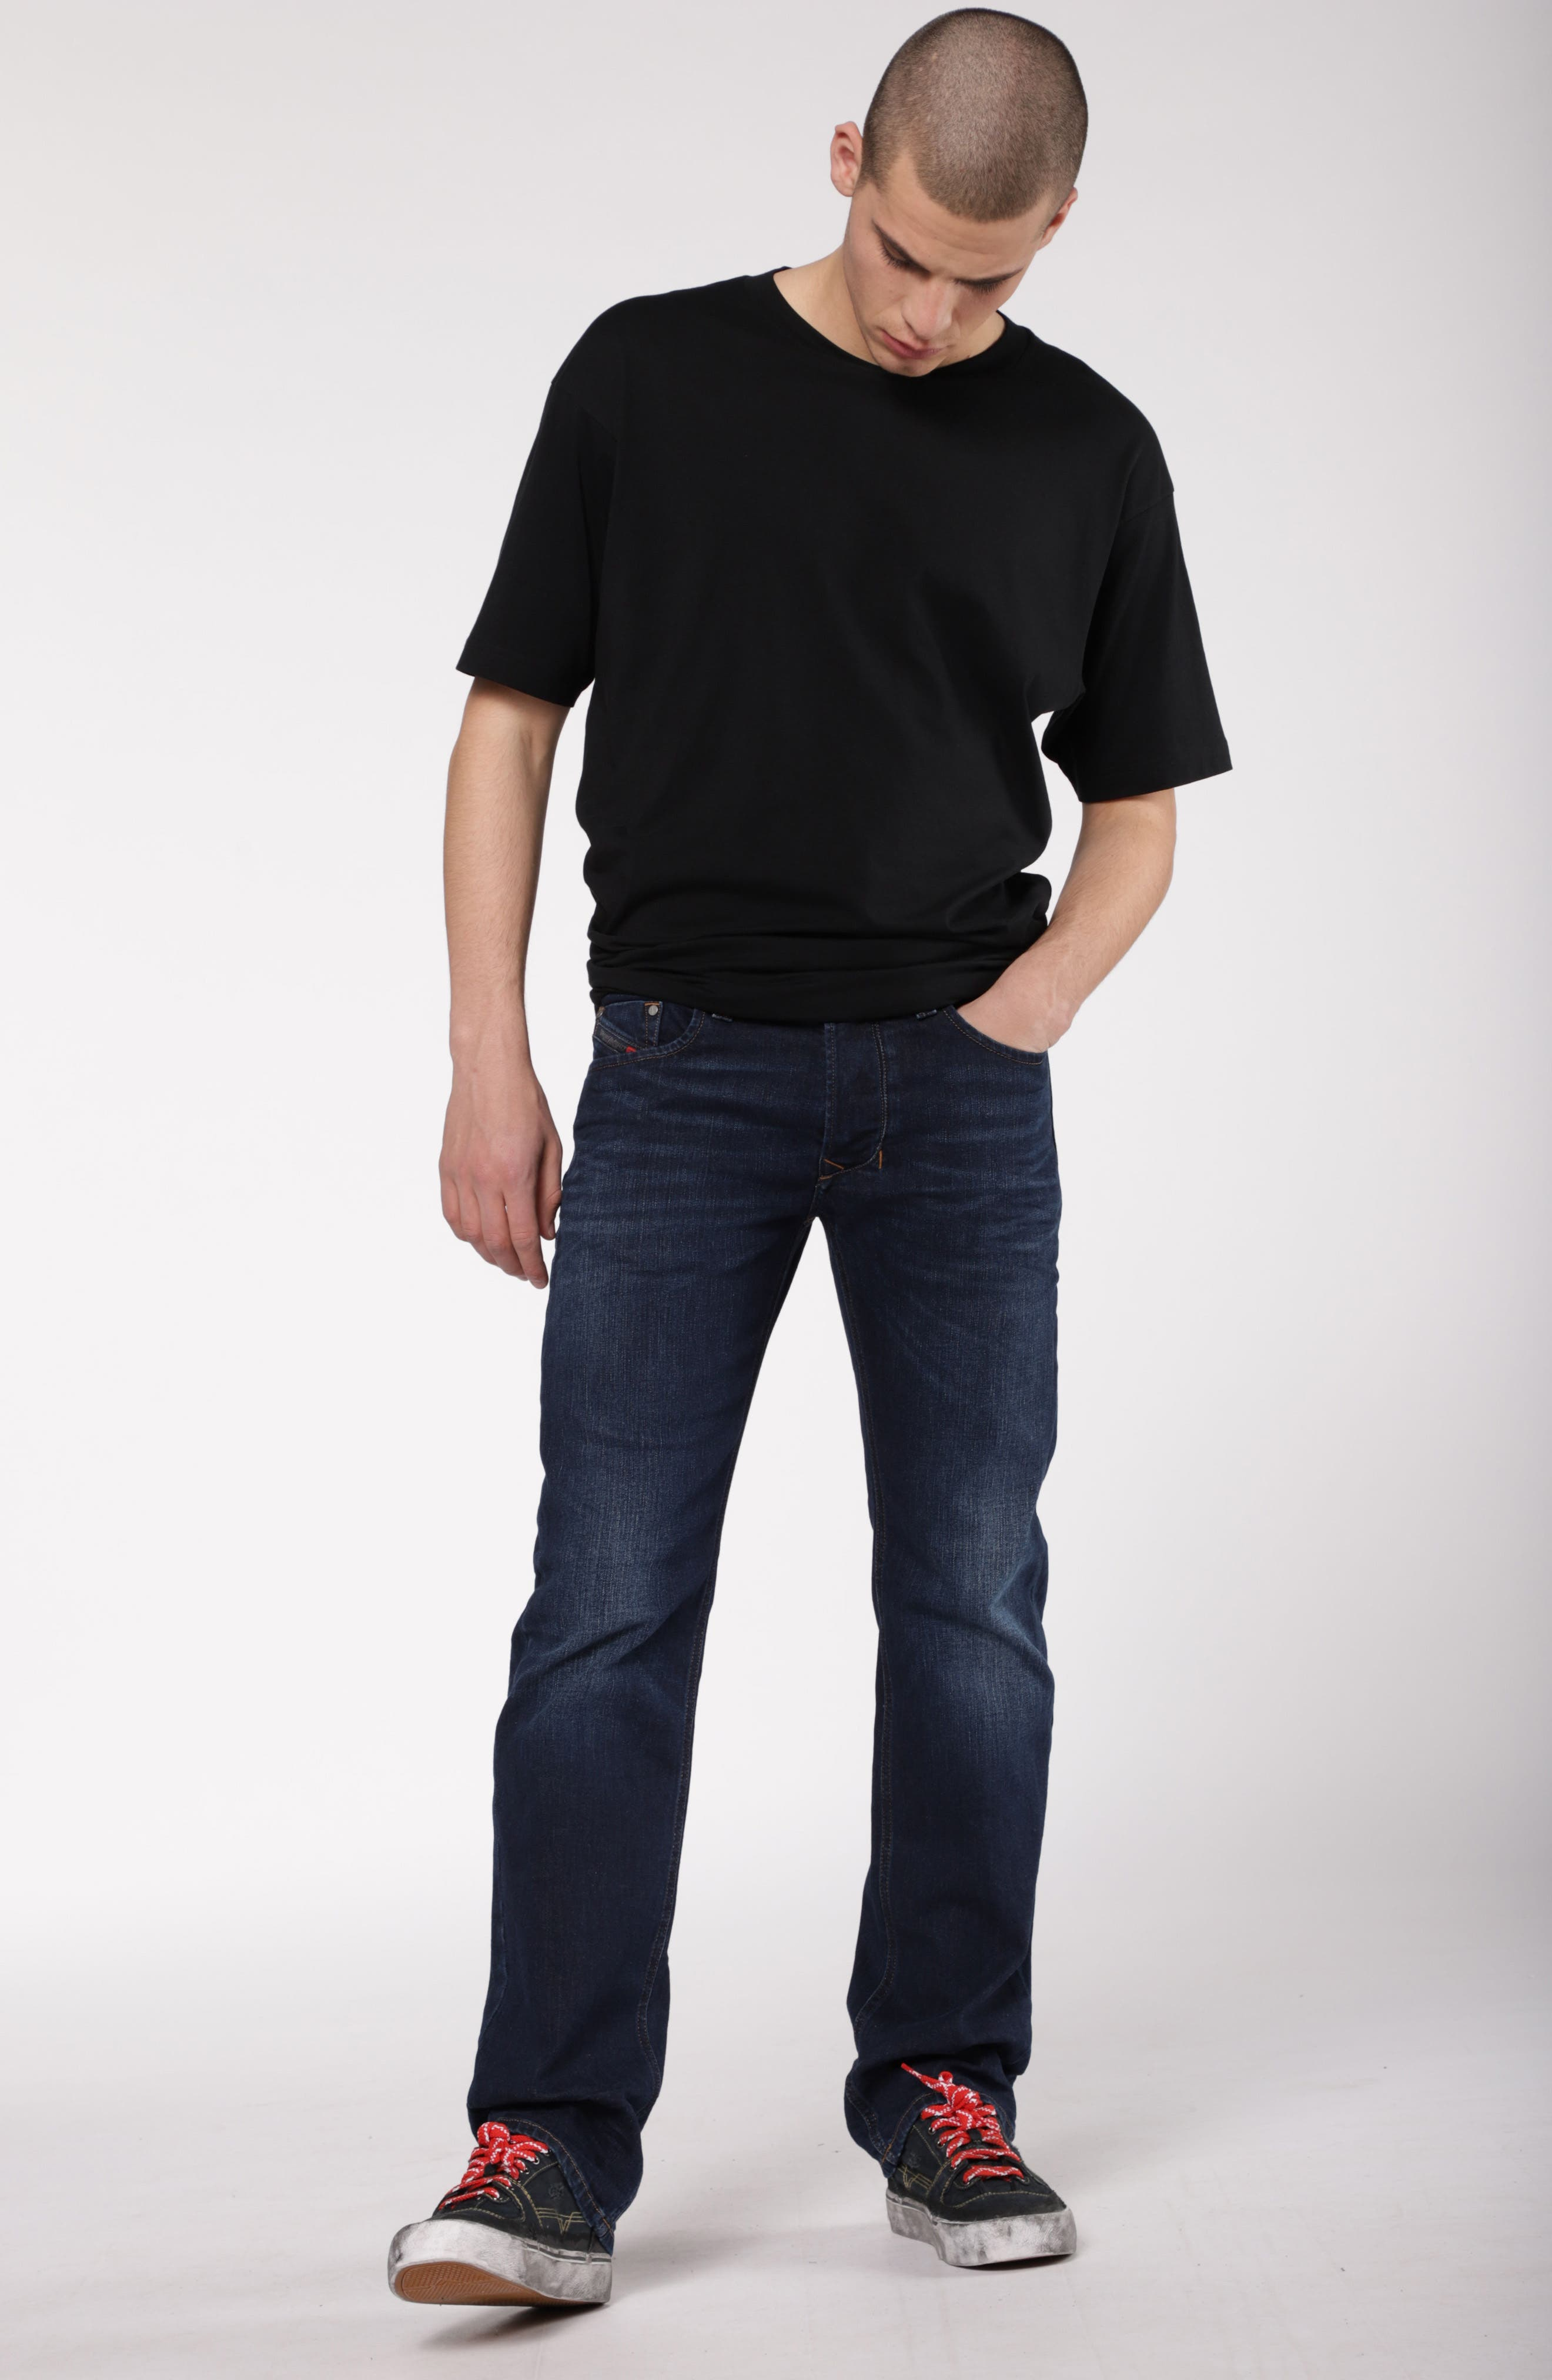 Larkee Relaxed Fit Jeans,                             Alternate thumbnail 5, color,                             084VG